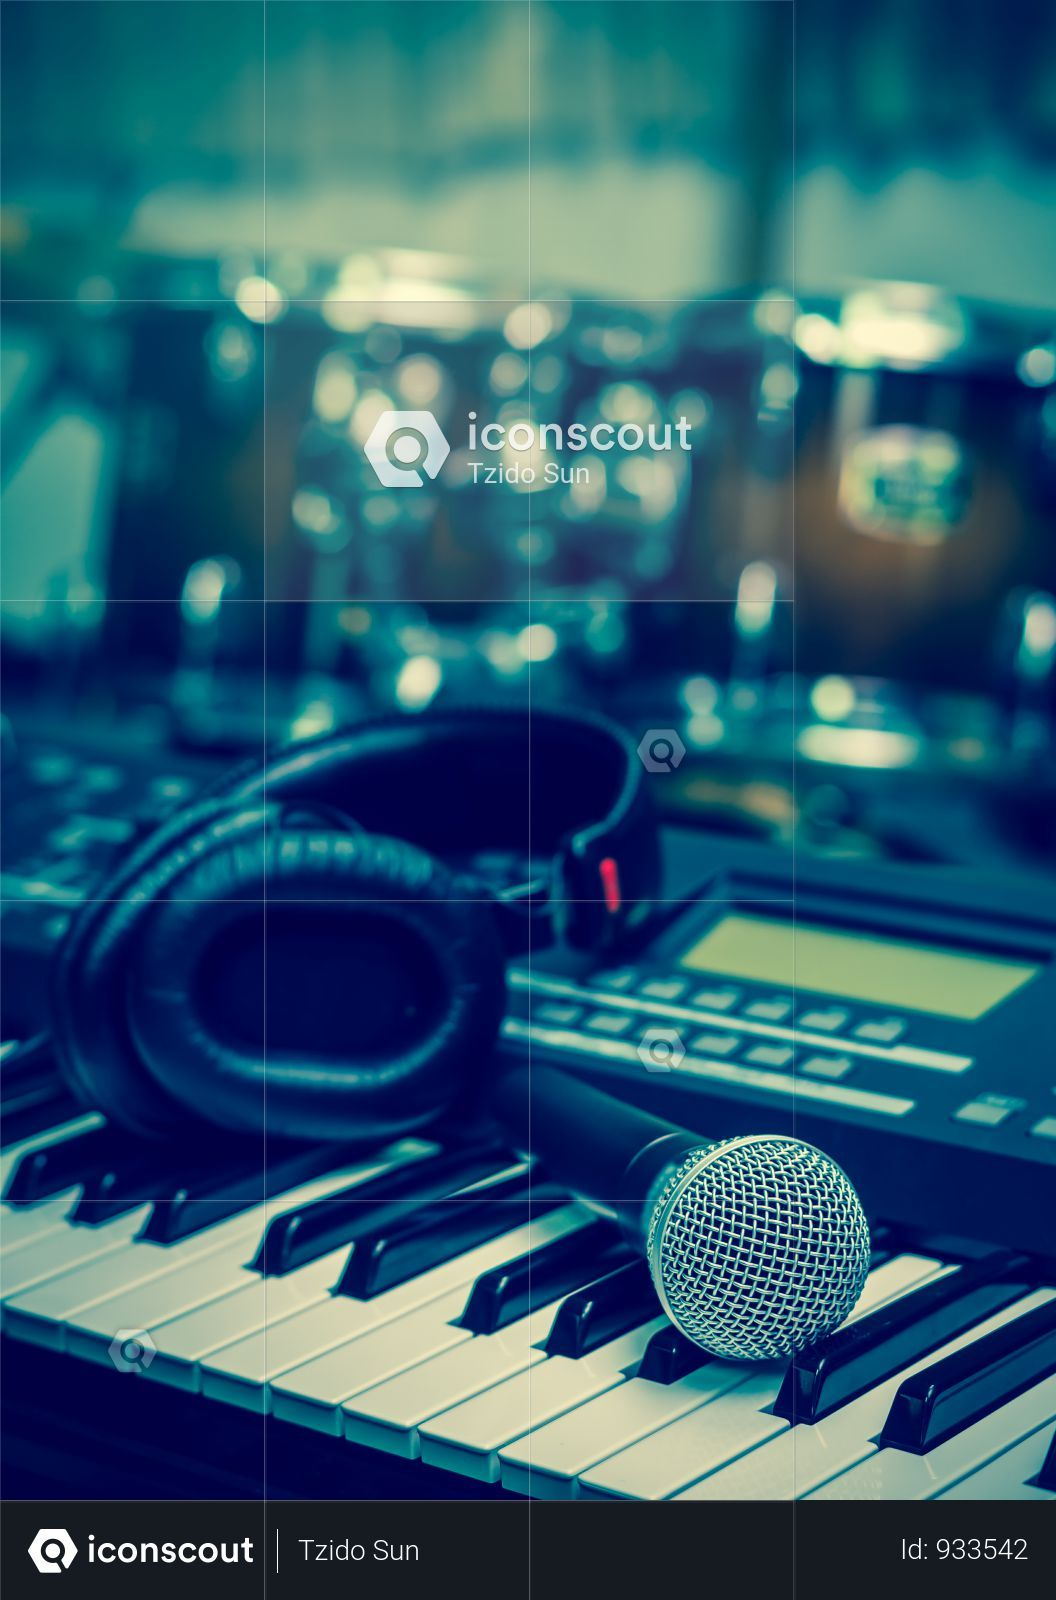 Premium Microphone On Music Keyboard With Music Brand Blurred Background Music Instrument Concpet Photo Download In Png Jpg Format Music Keyboard Blurred Background Music Instruments